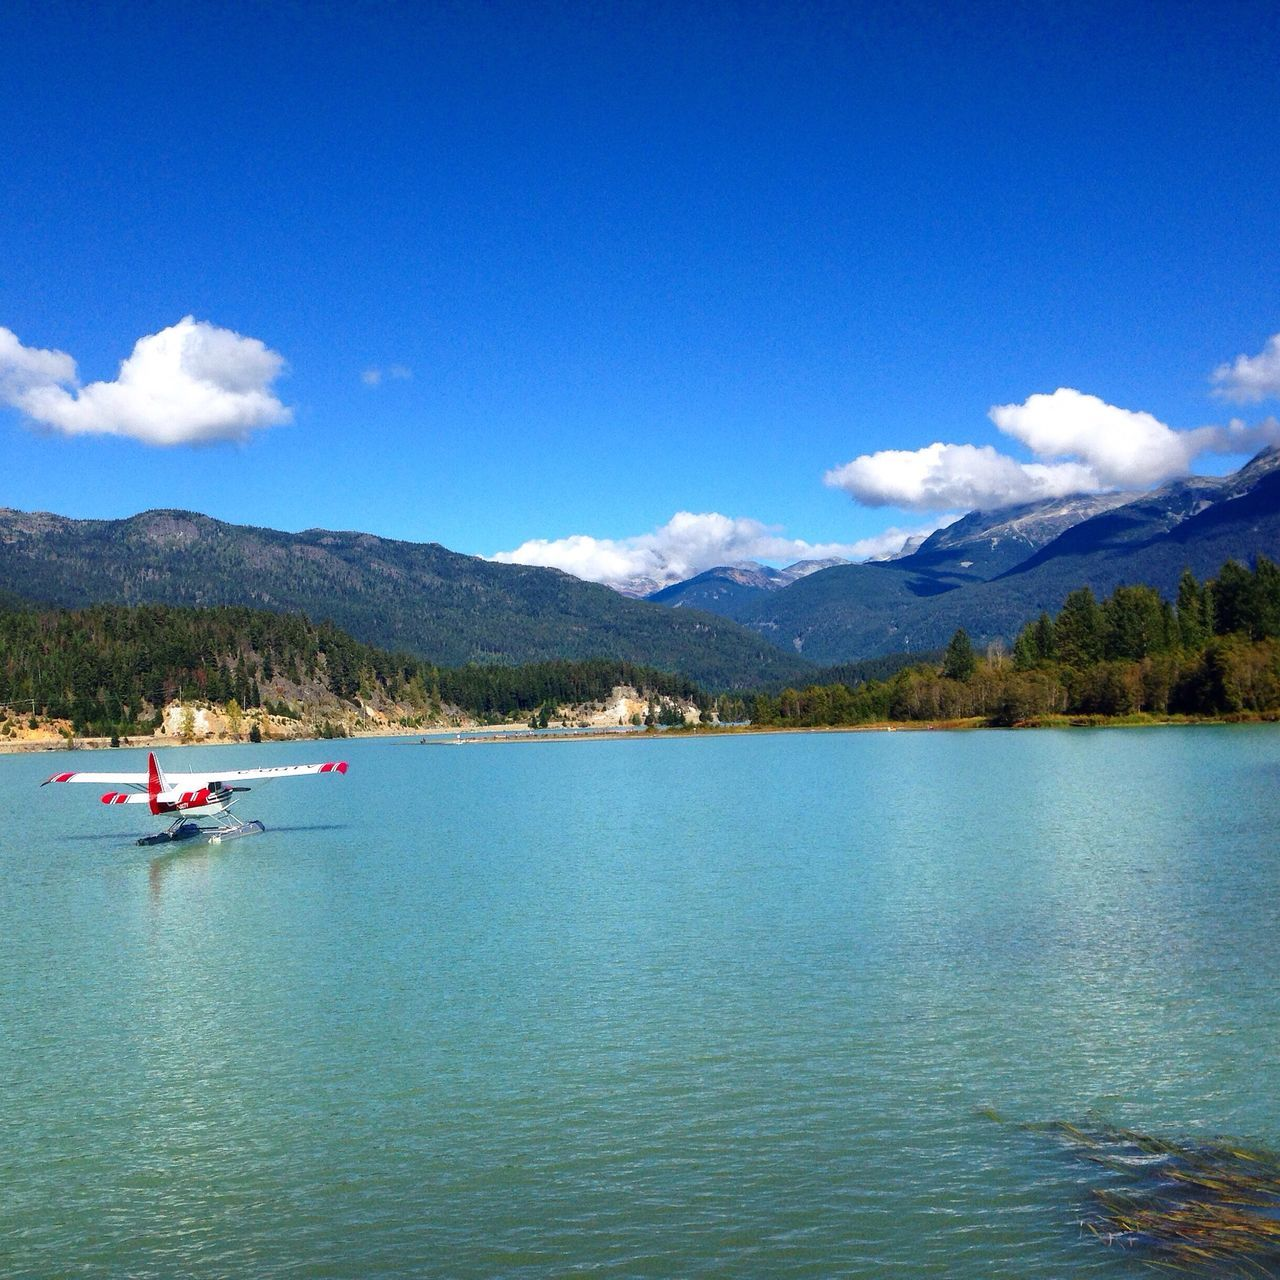 German Photographer Travel Photography Canada Britishcolumbia Whistler Traveling Lake View Blue Sky Clouds Waterplane Summer Kanada Reisen See Wasserflugzeug Leben Genießen Enjoying Life Blue Wave The Great Outdoors With Adobe The Great Outdoors - 2016 EyeEm Awards